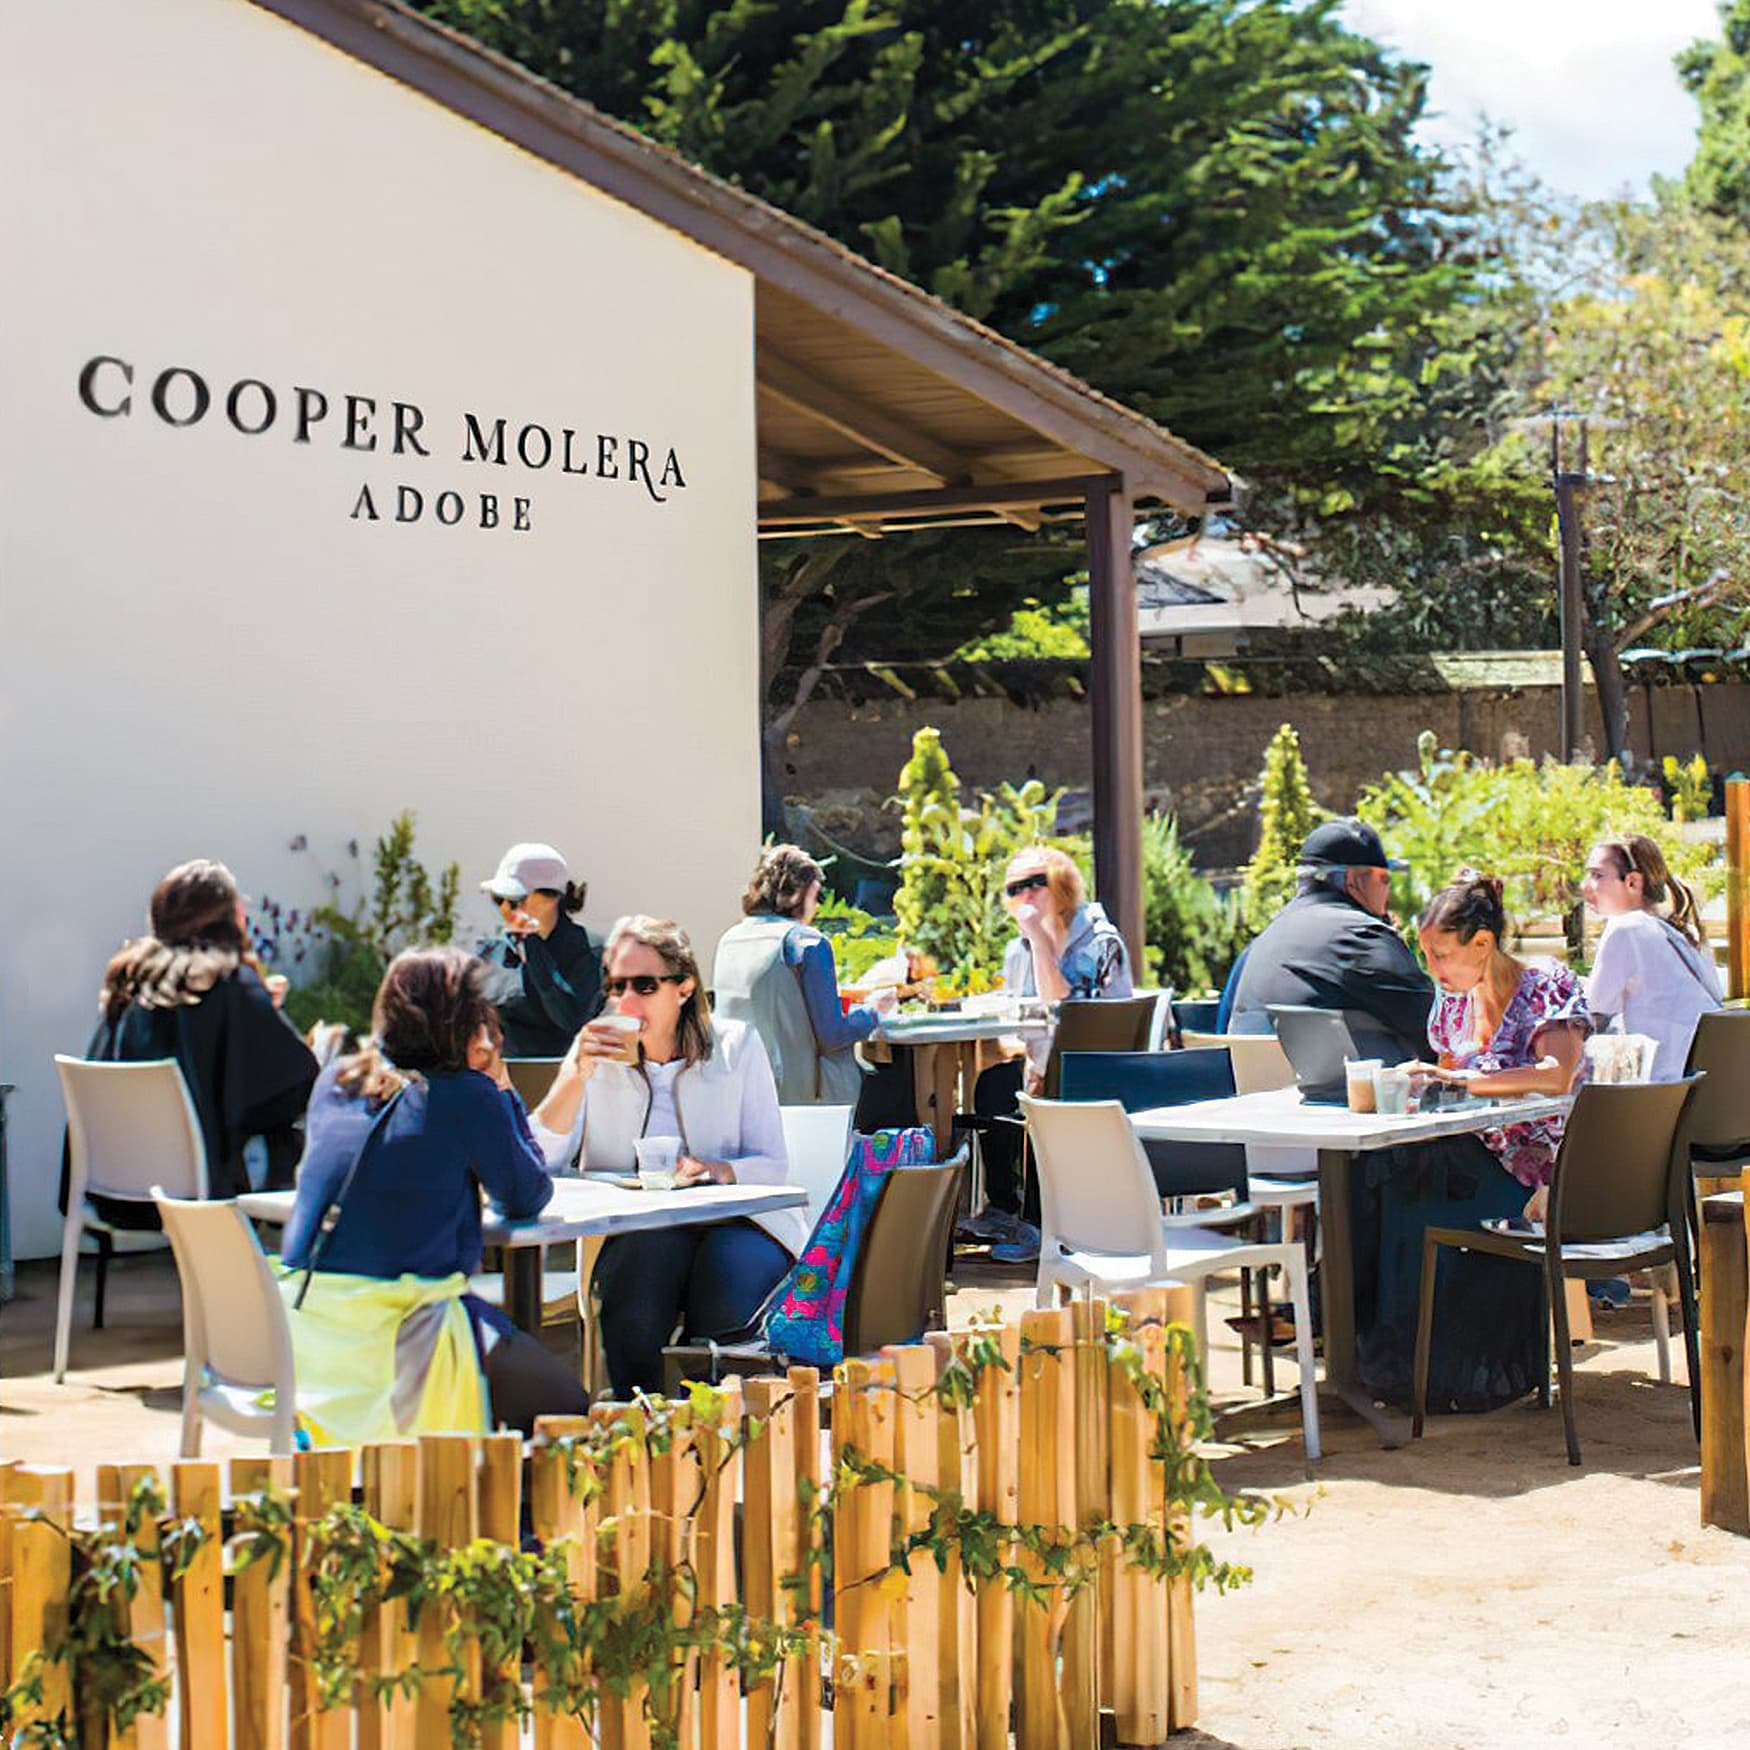 RSM Design painted storefront identity and brand for Cooper Molera Adobe, in Monterey, California,  is a historic property jointly managed with the National Trust for Historic Preservation